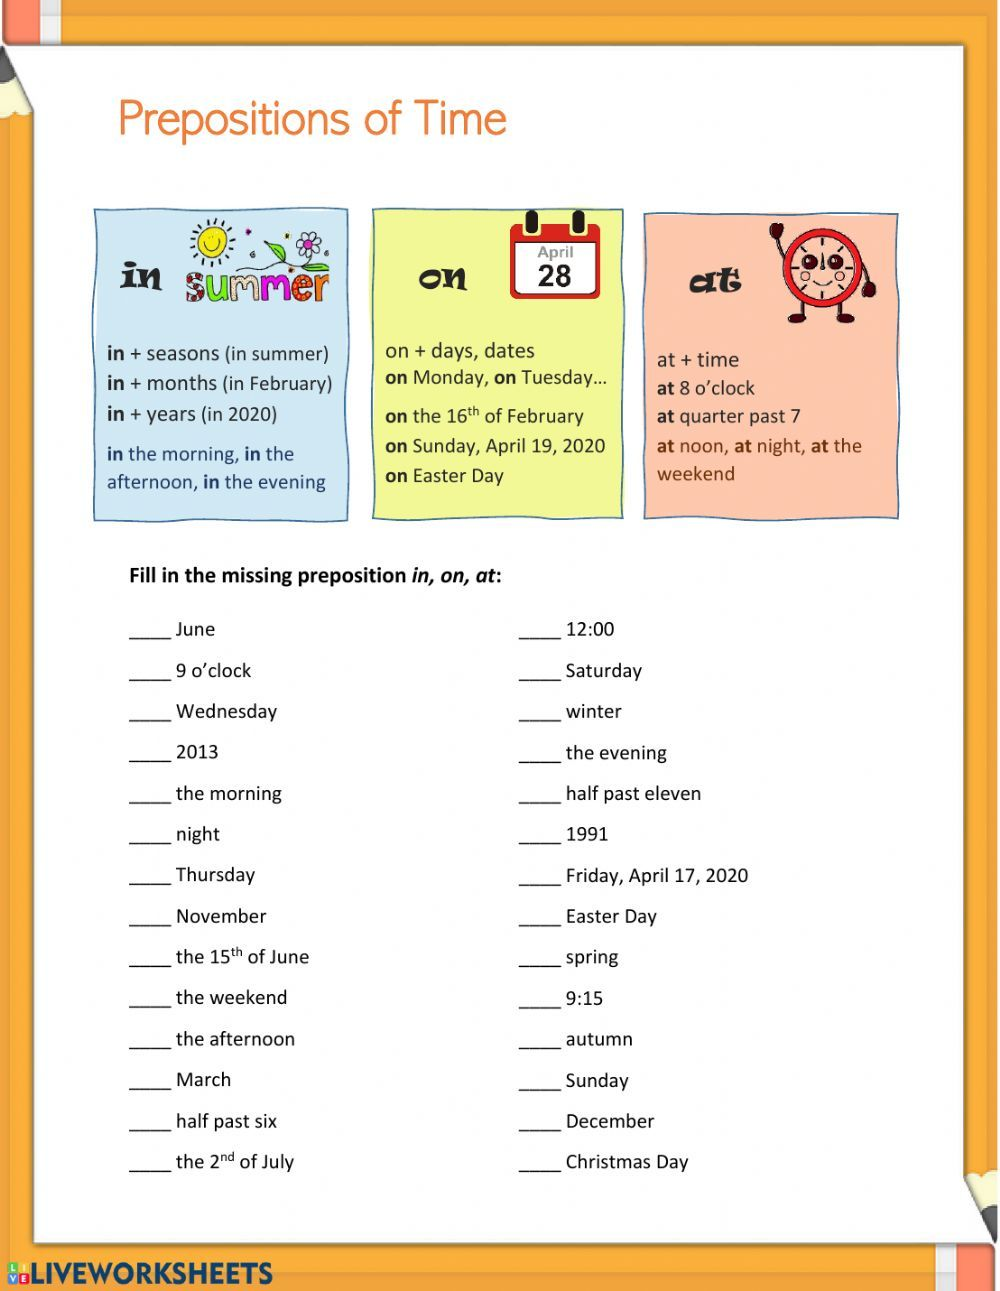 Prepositions In On At Prepositions Of Time Worksheet In 2020 Prepositions Time Worksheets Learn English Words